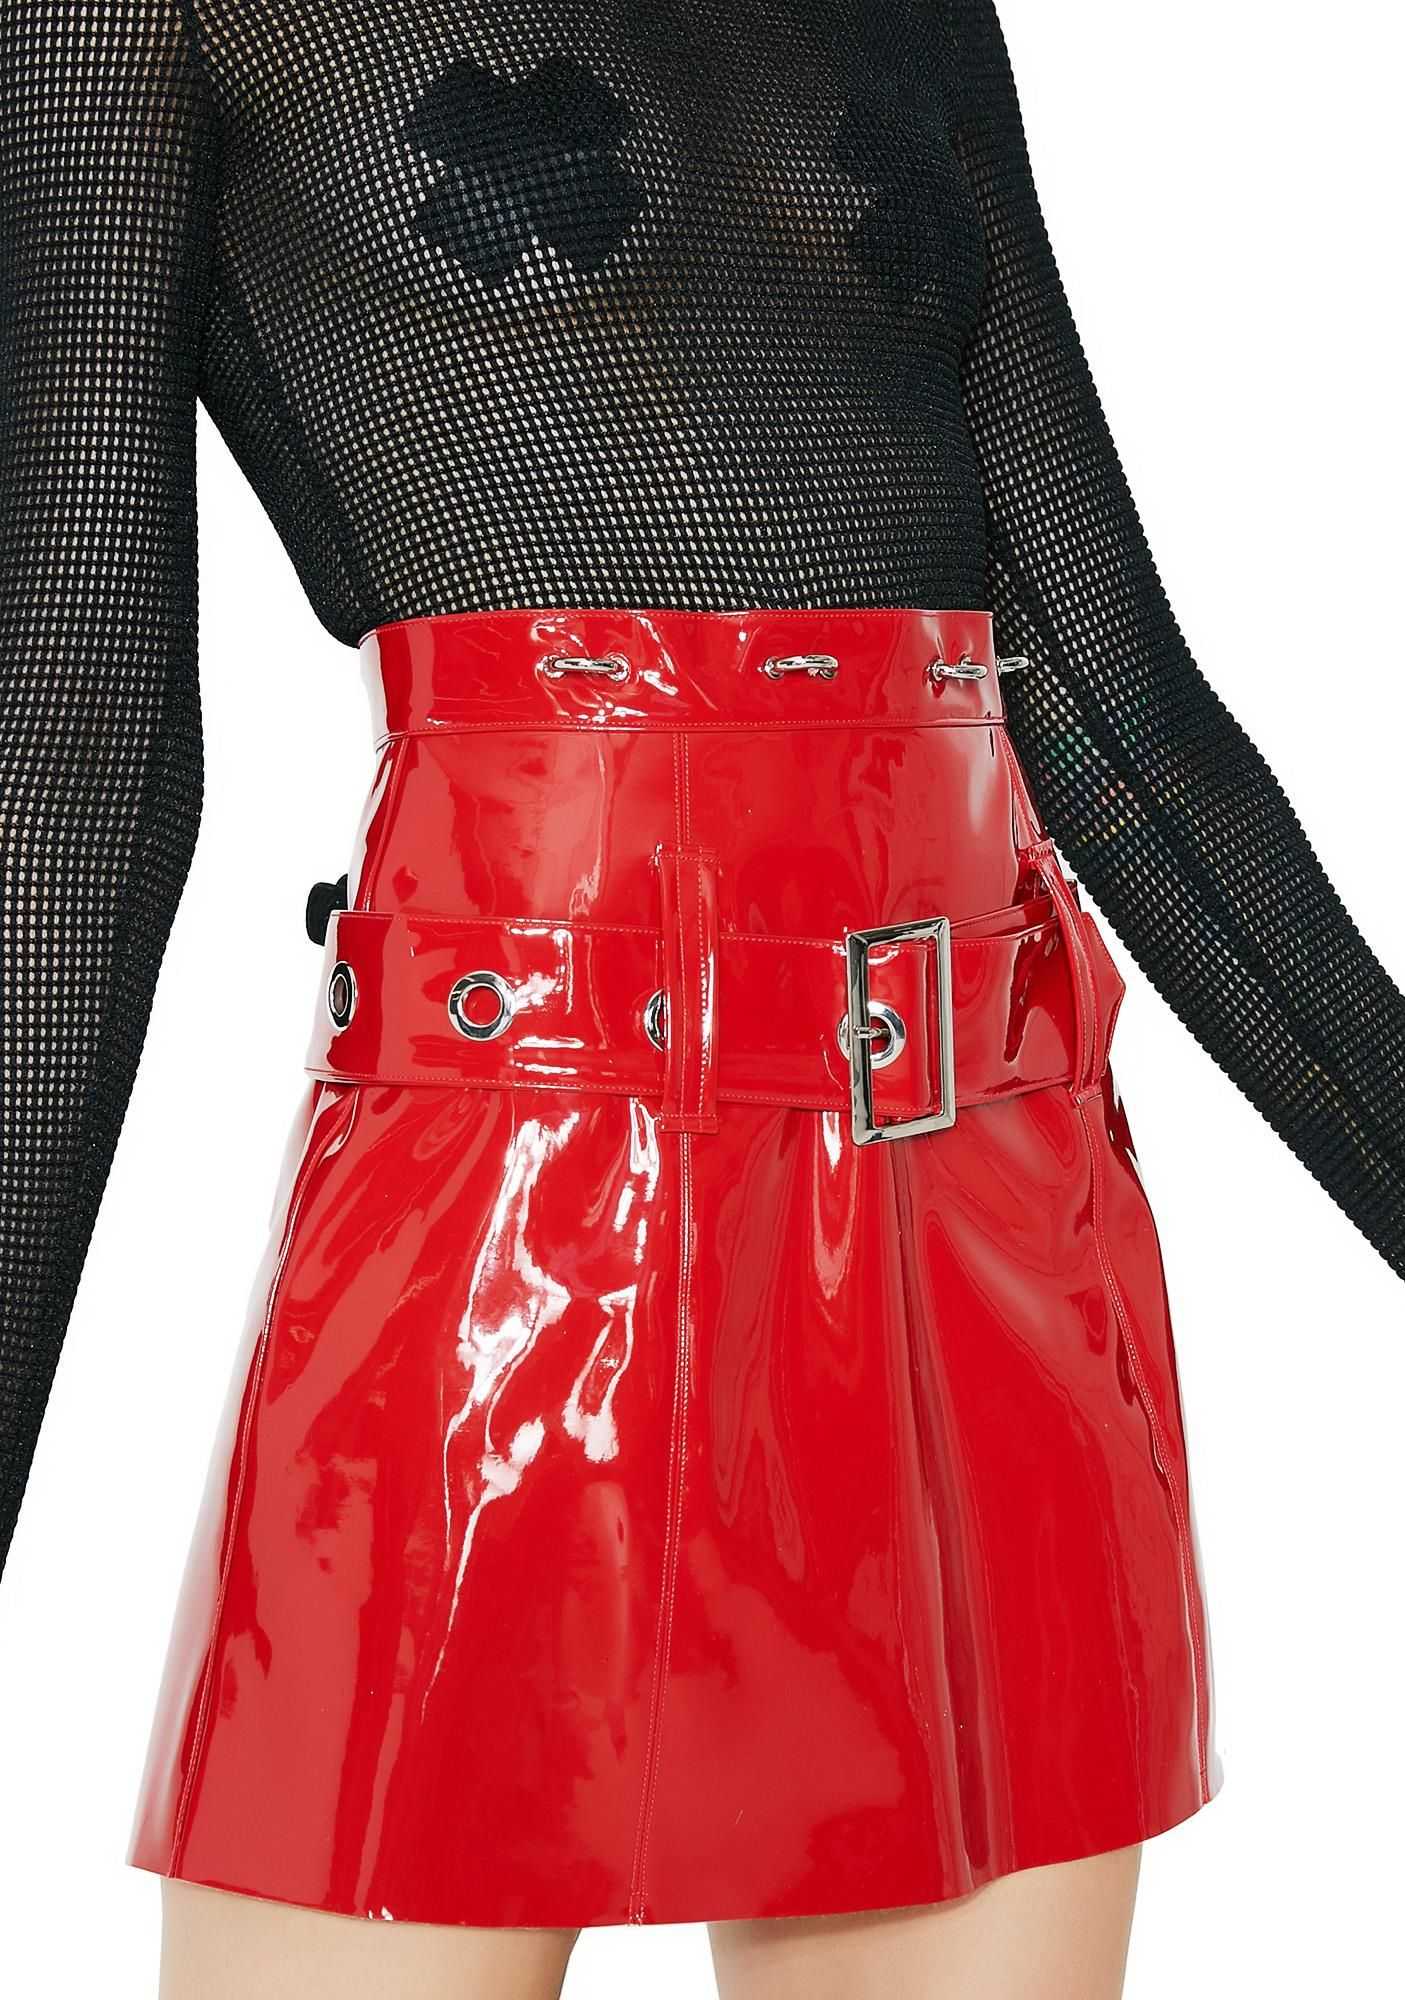 2133cf849 Stuck on Stupid High Alert Vinyl Skirt cuz heads are turnin' for ya. This  sikk red a-line skirt has a cool belt detail with silver buckle closure and  silver ...